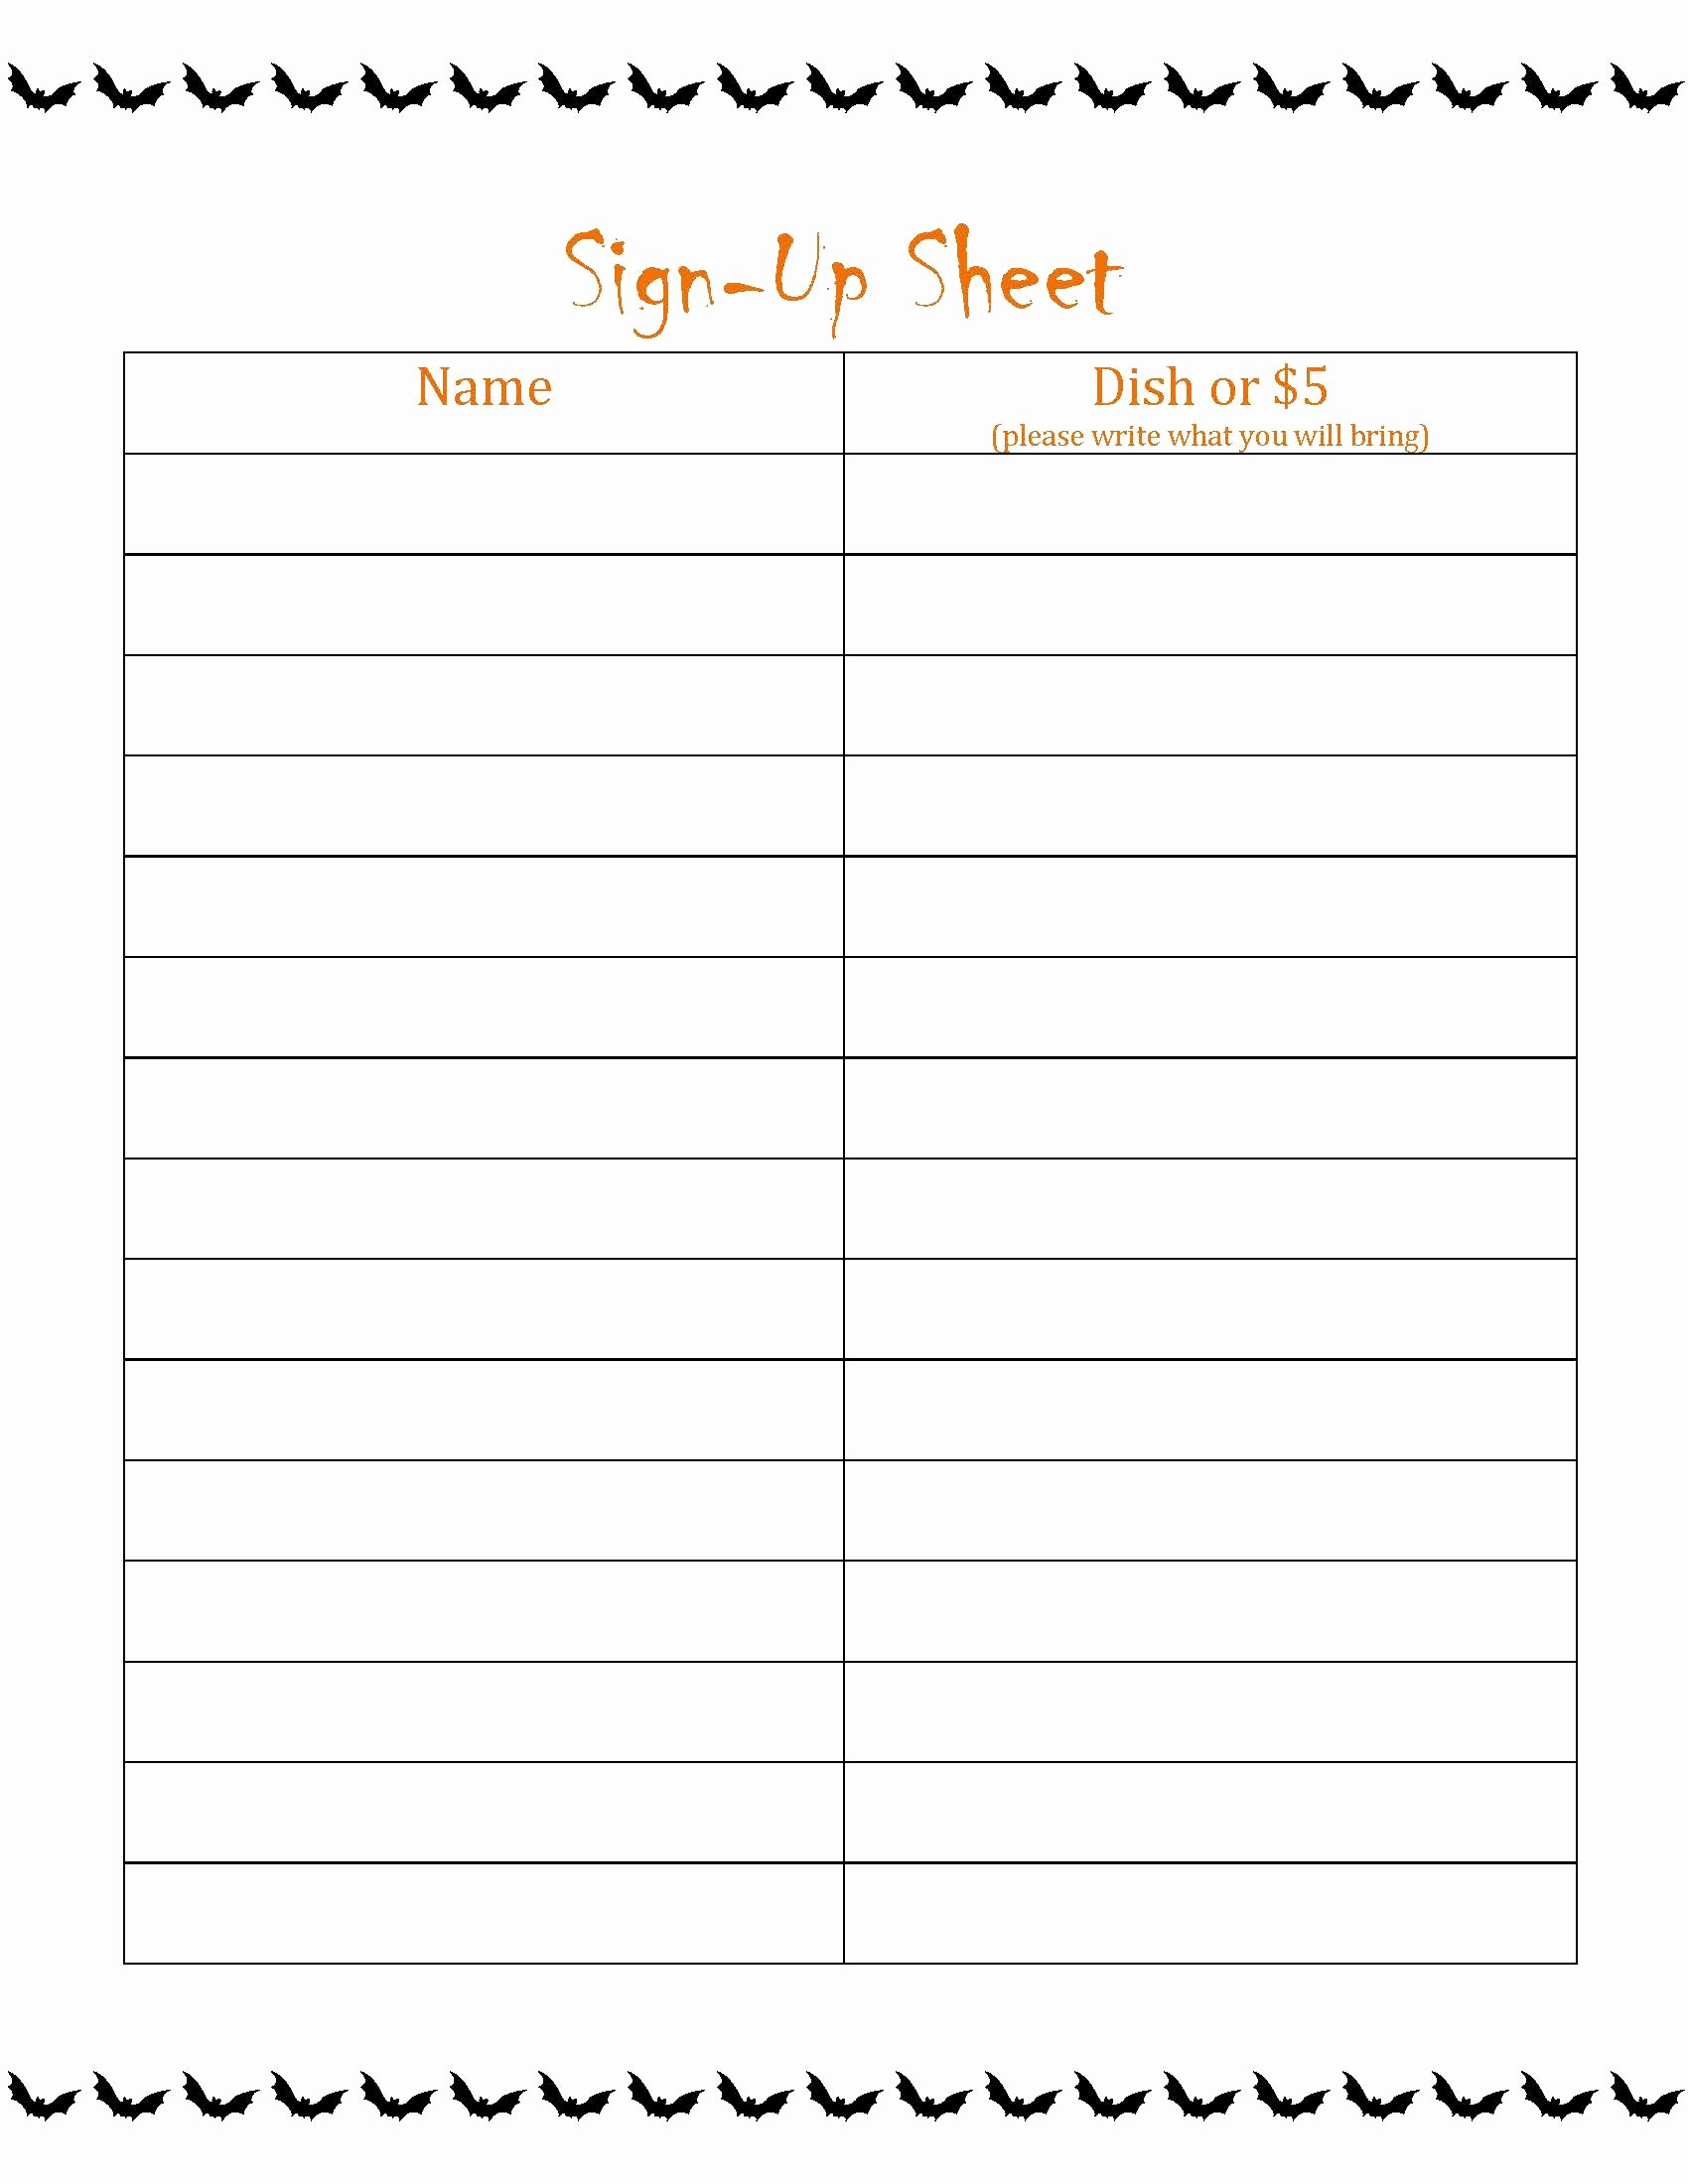 99 Party Sign In Sheet Template Download the Potluck